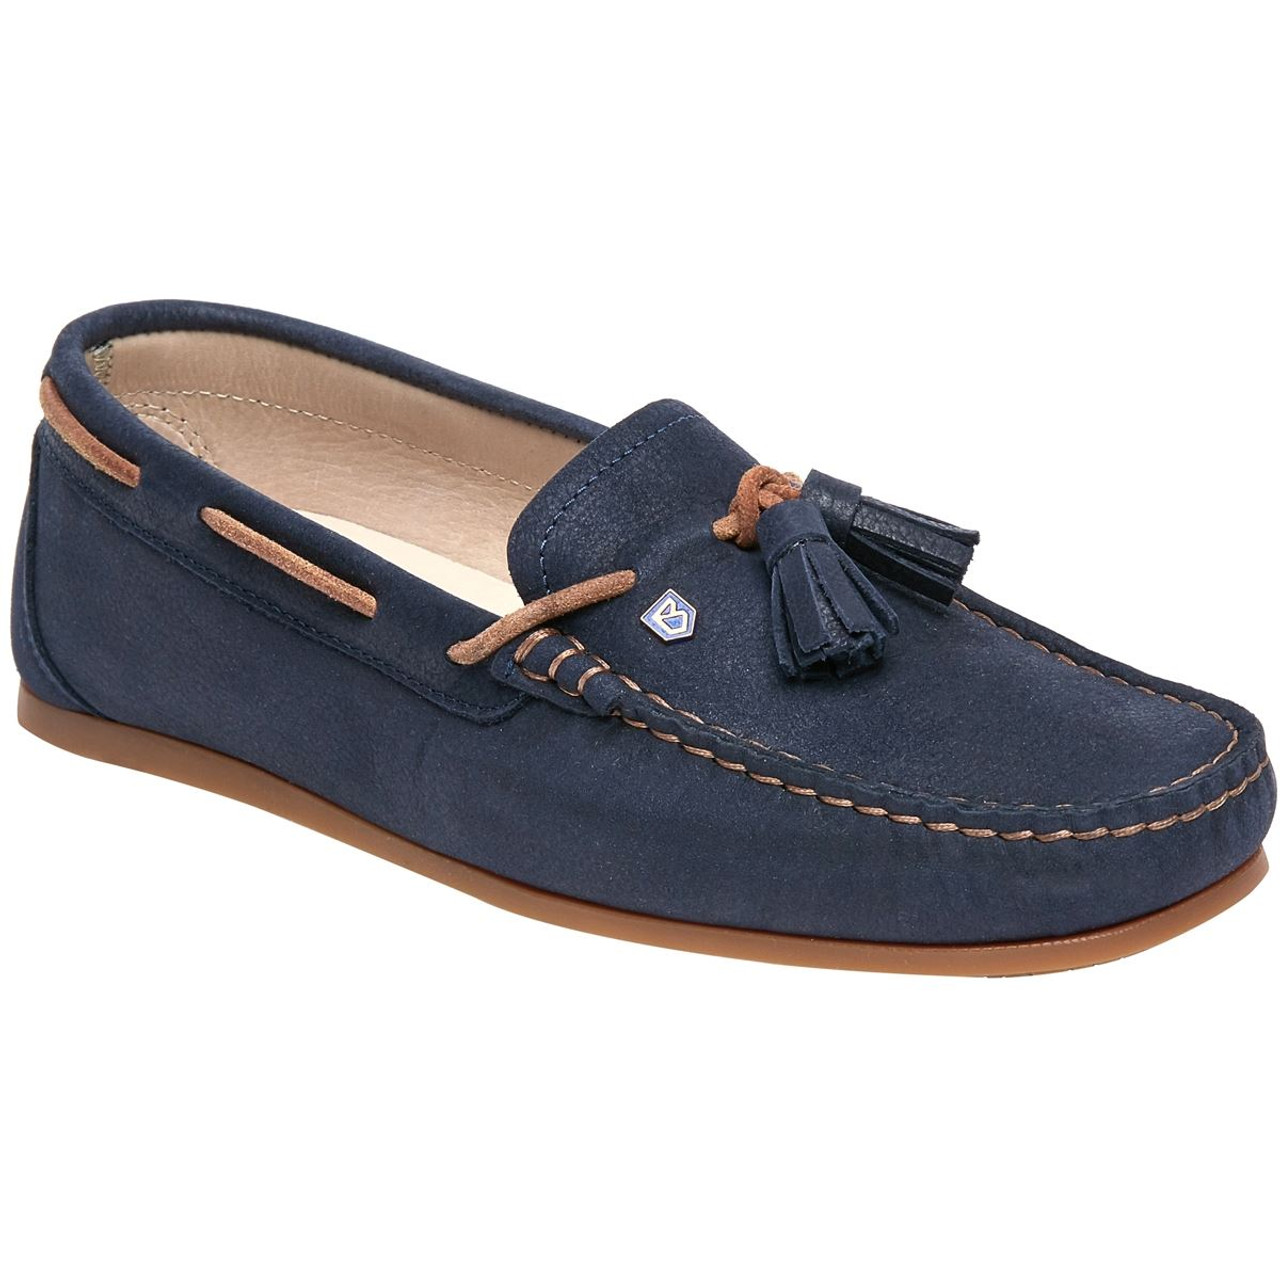 Dubarry Jamaica Loafers in Navy